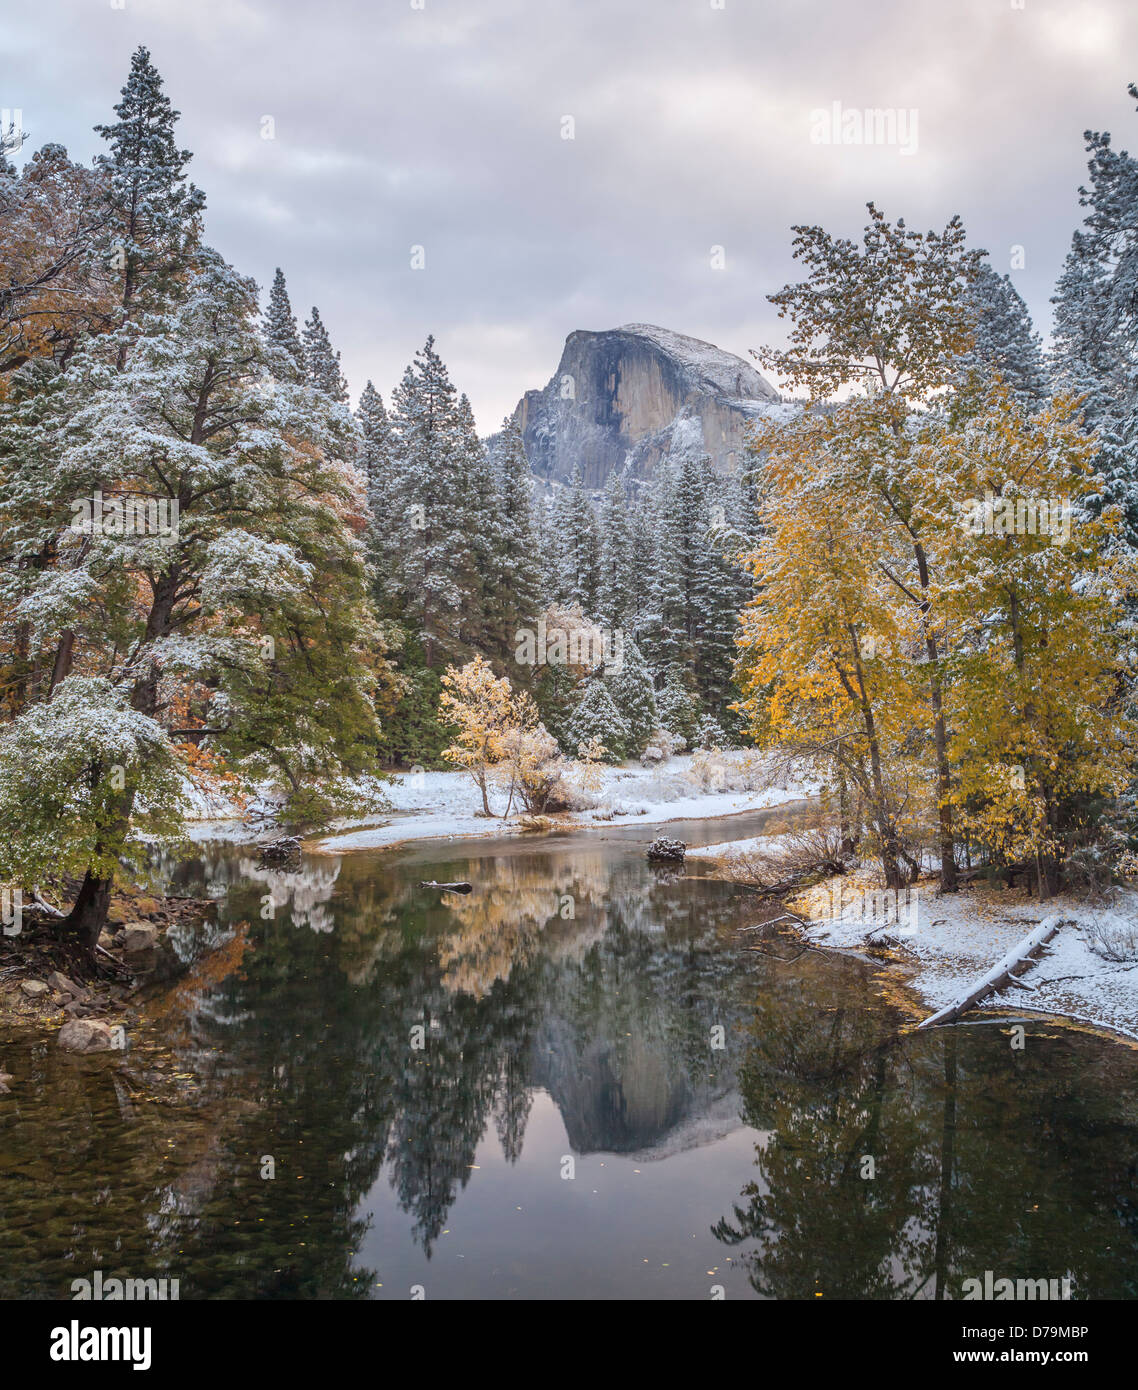 Yosemite National Park, California: Half Dome reflecting on the Merced river with fresh snow along the banks - Stock Image